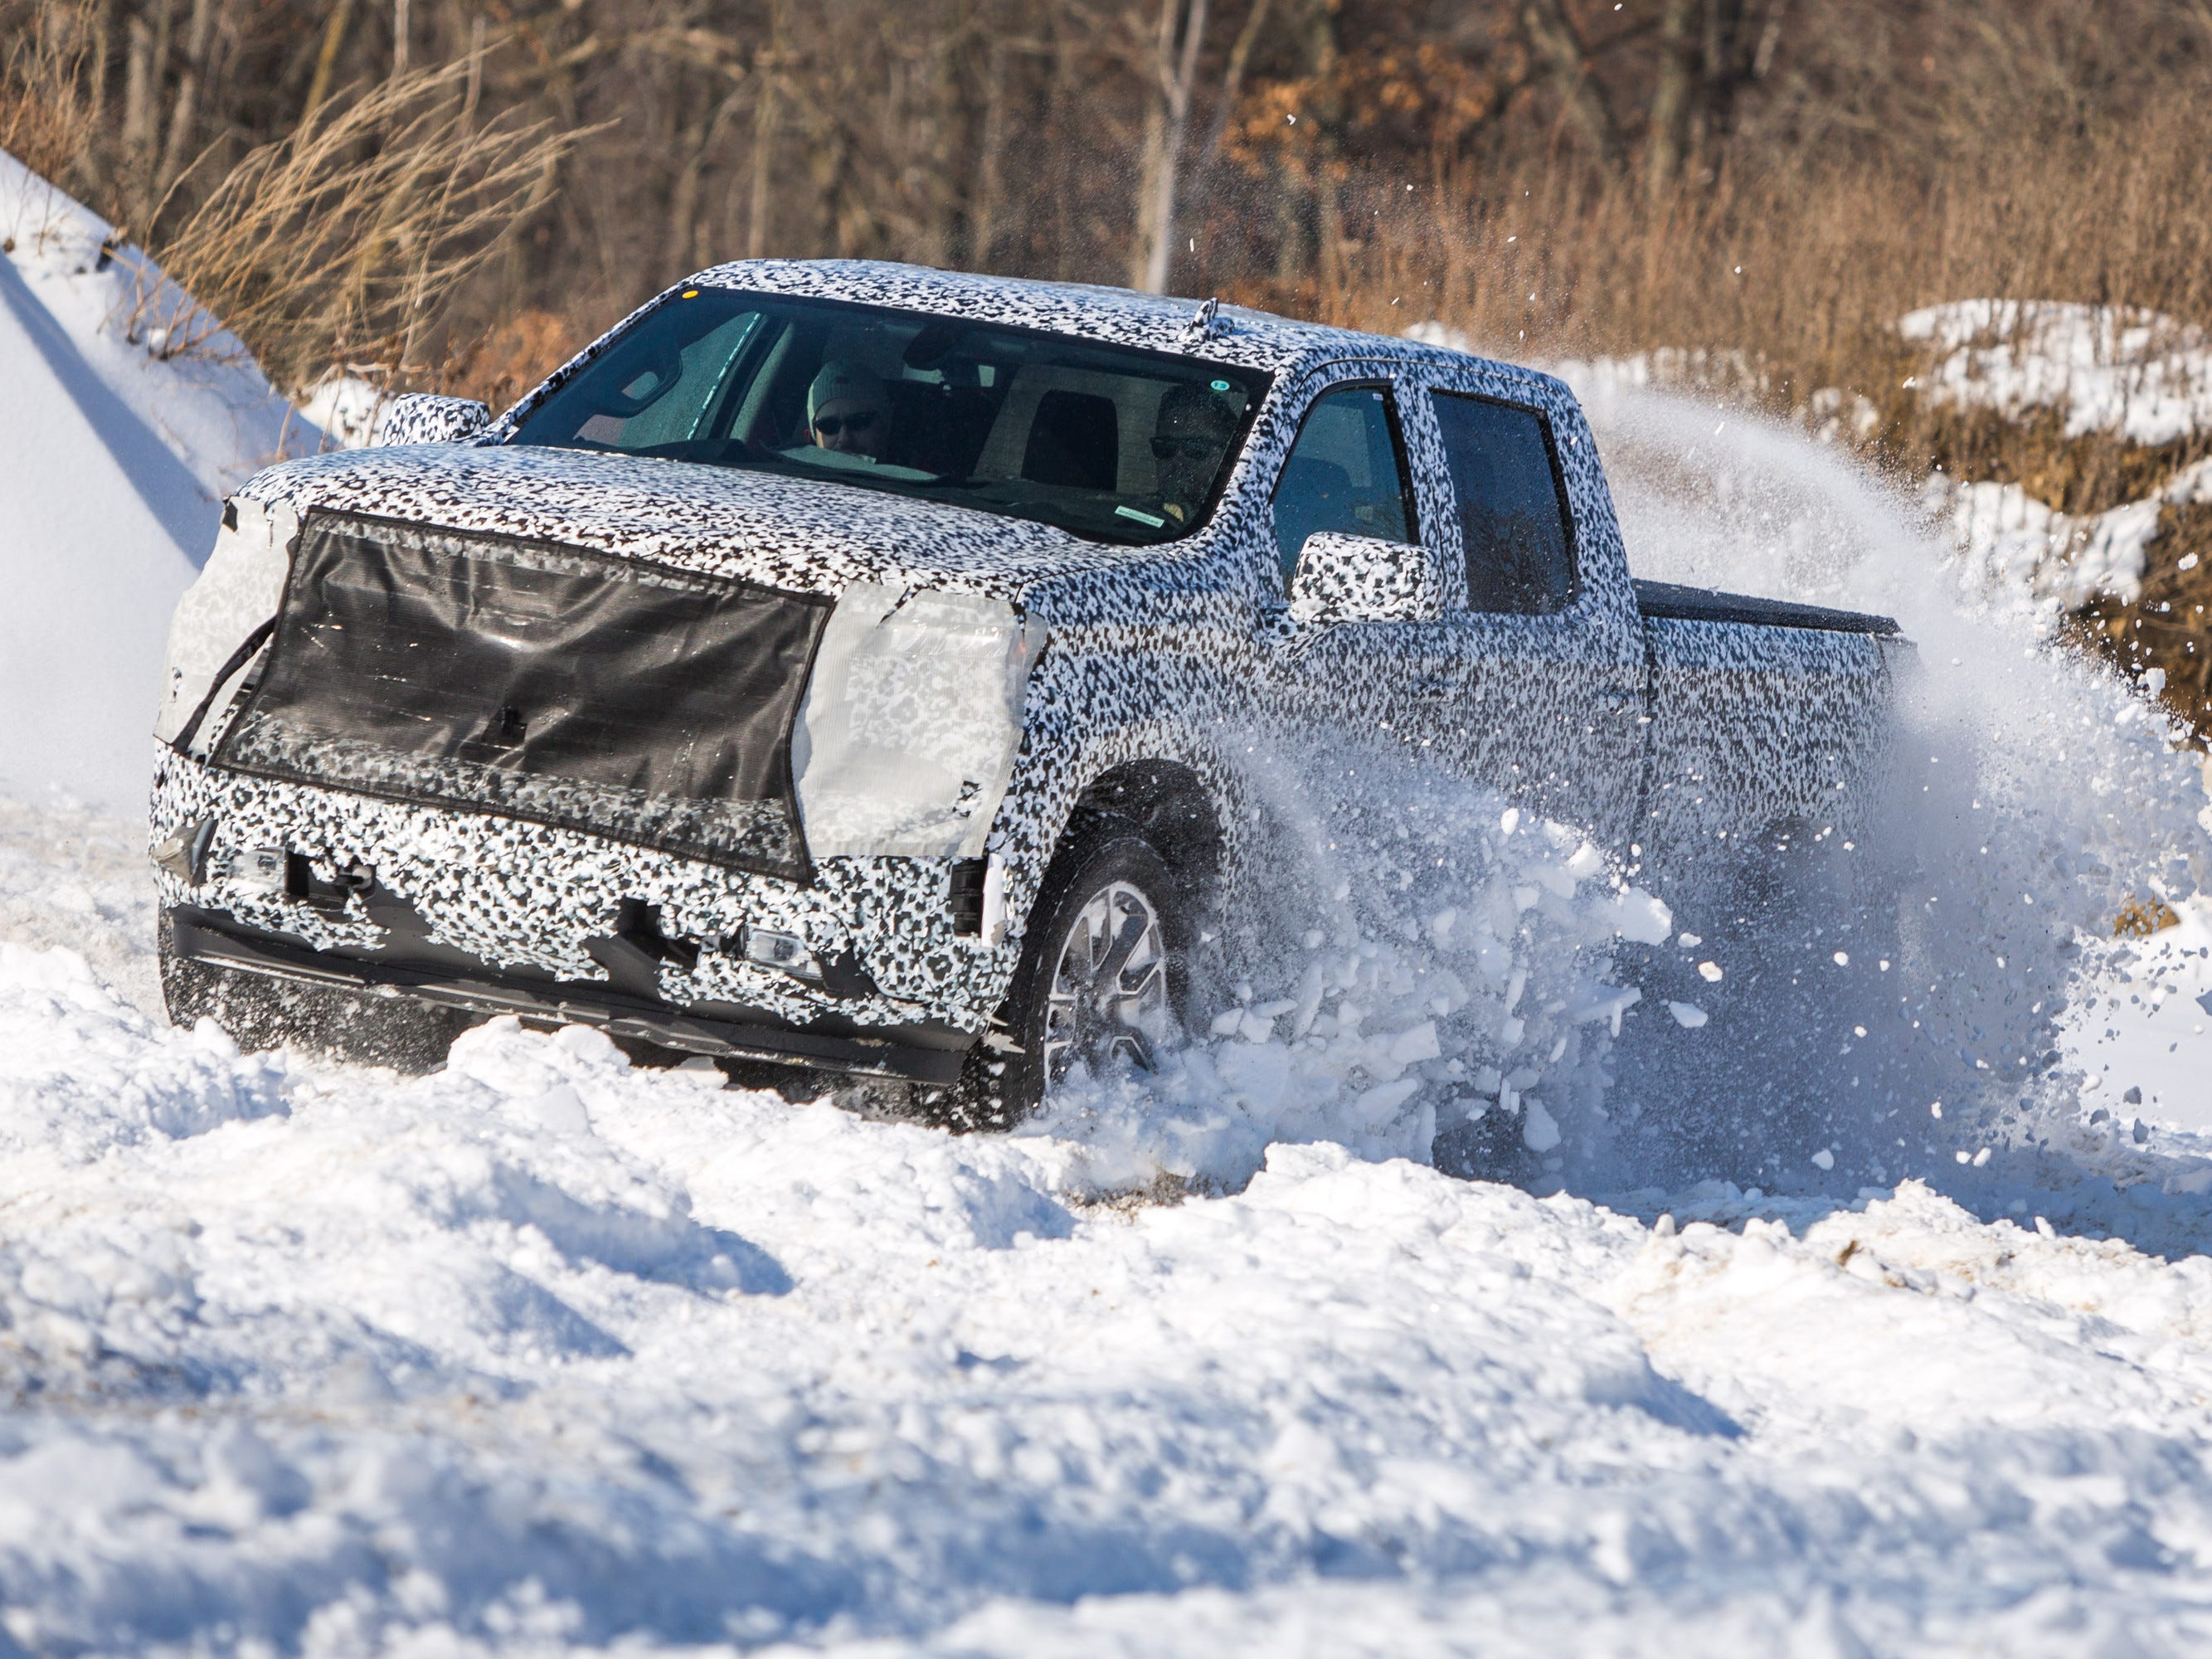 The next-generation Chevrolet Silverado undergoes testing Tuesday, January 9, 2018 at the General Motors Milford Proving Ground in Milford, Michigan.